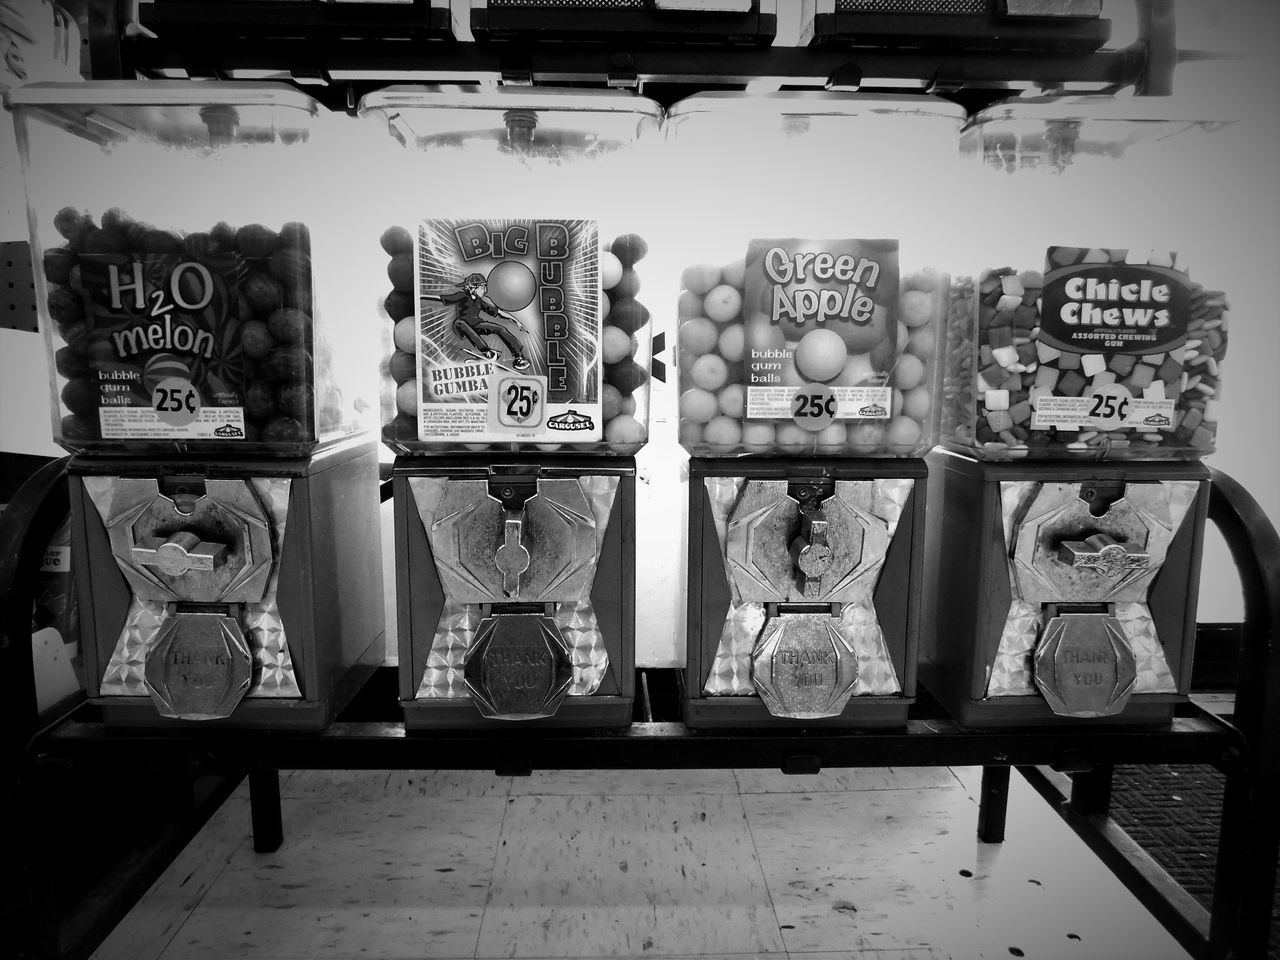 Choice Indoors  Large Group Of Objects No People Text Variation Bubblegum Bubblegummachine Gumball Machines Blackandwhite Darkness And Light Childhood Memories Gumballs Vending Machine Candy Sweets Sweettooth Indoors  Shapes Food Random Acts Of Photography Coin Operated Beautifully Organized Notes From The Underground Food And Drink